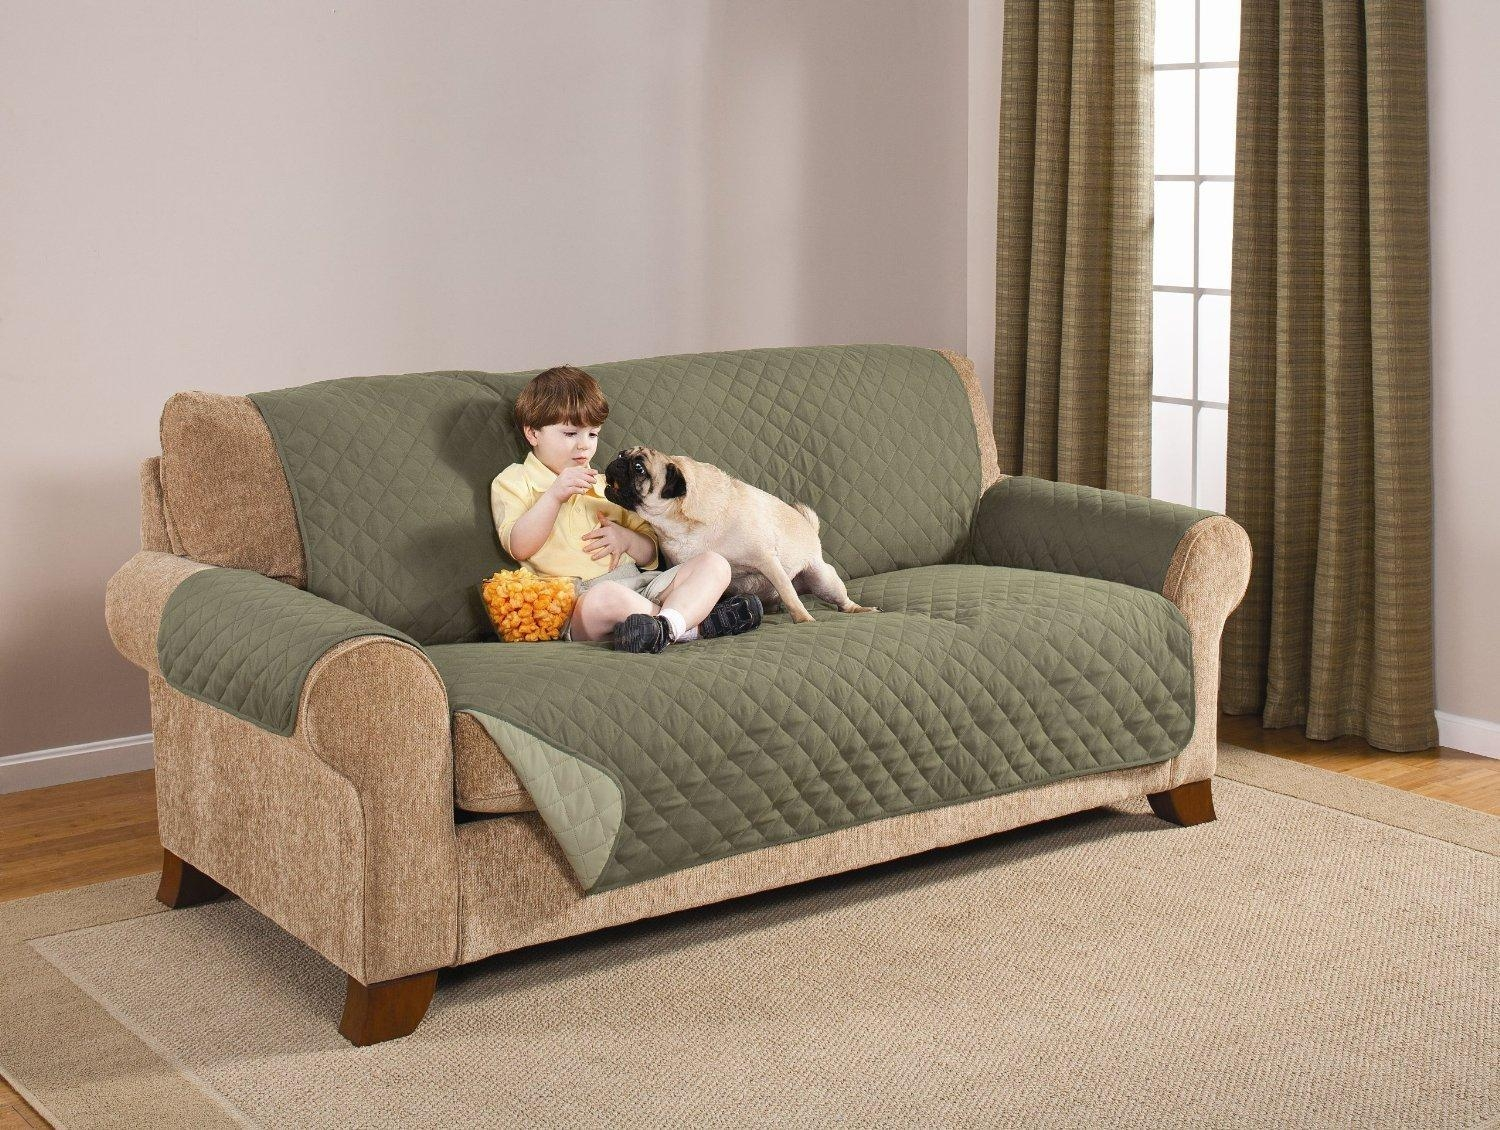 Sofas Center : Overstuffed Dog Couch1 Pet Cover For Sofa Covers Pertaining To Overstuffed Sofas And Chairs (Image 19 of 20)